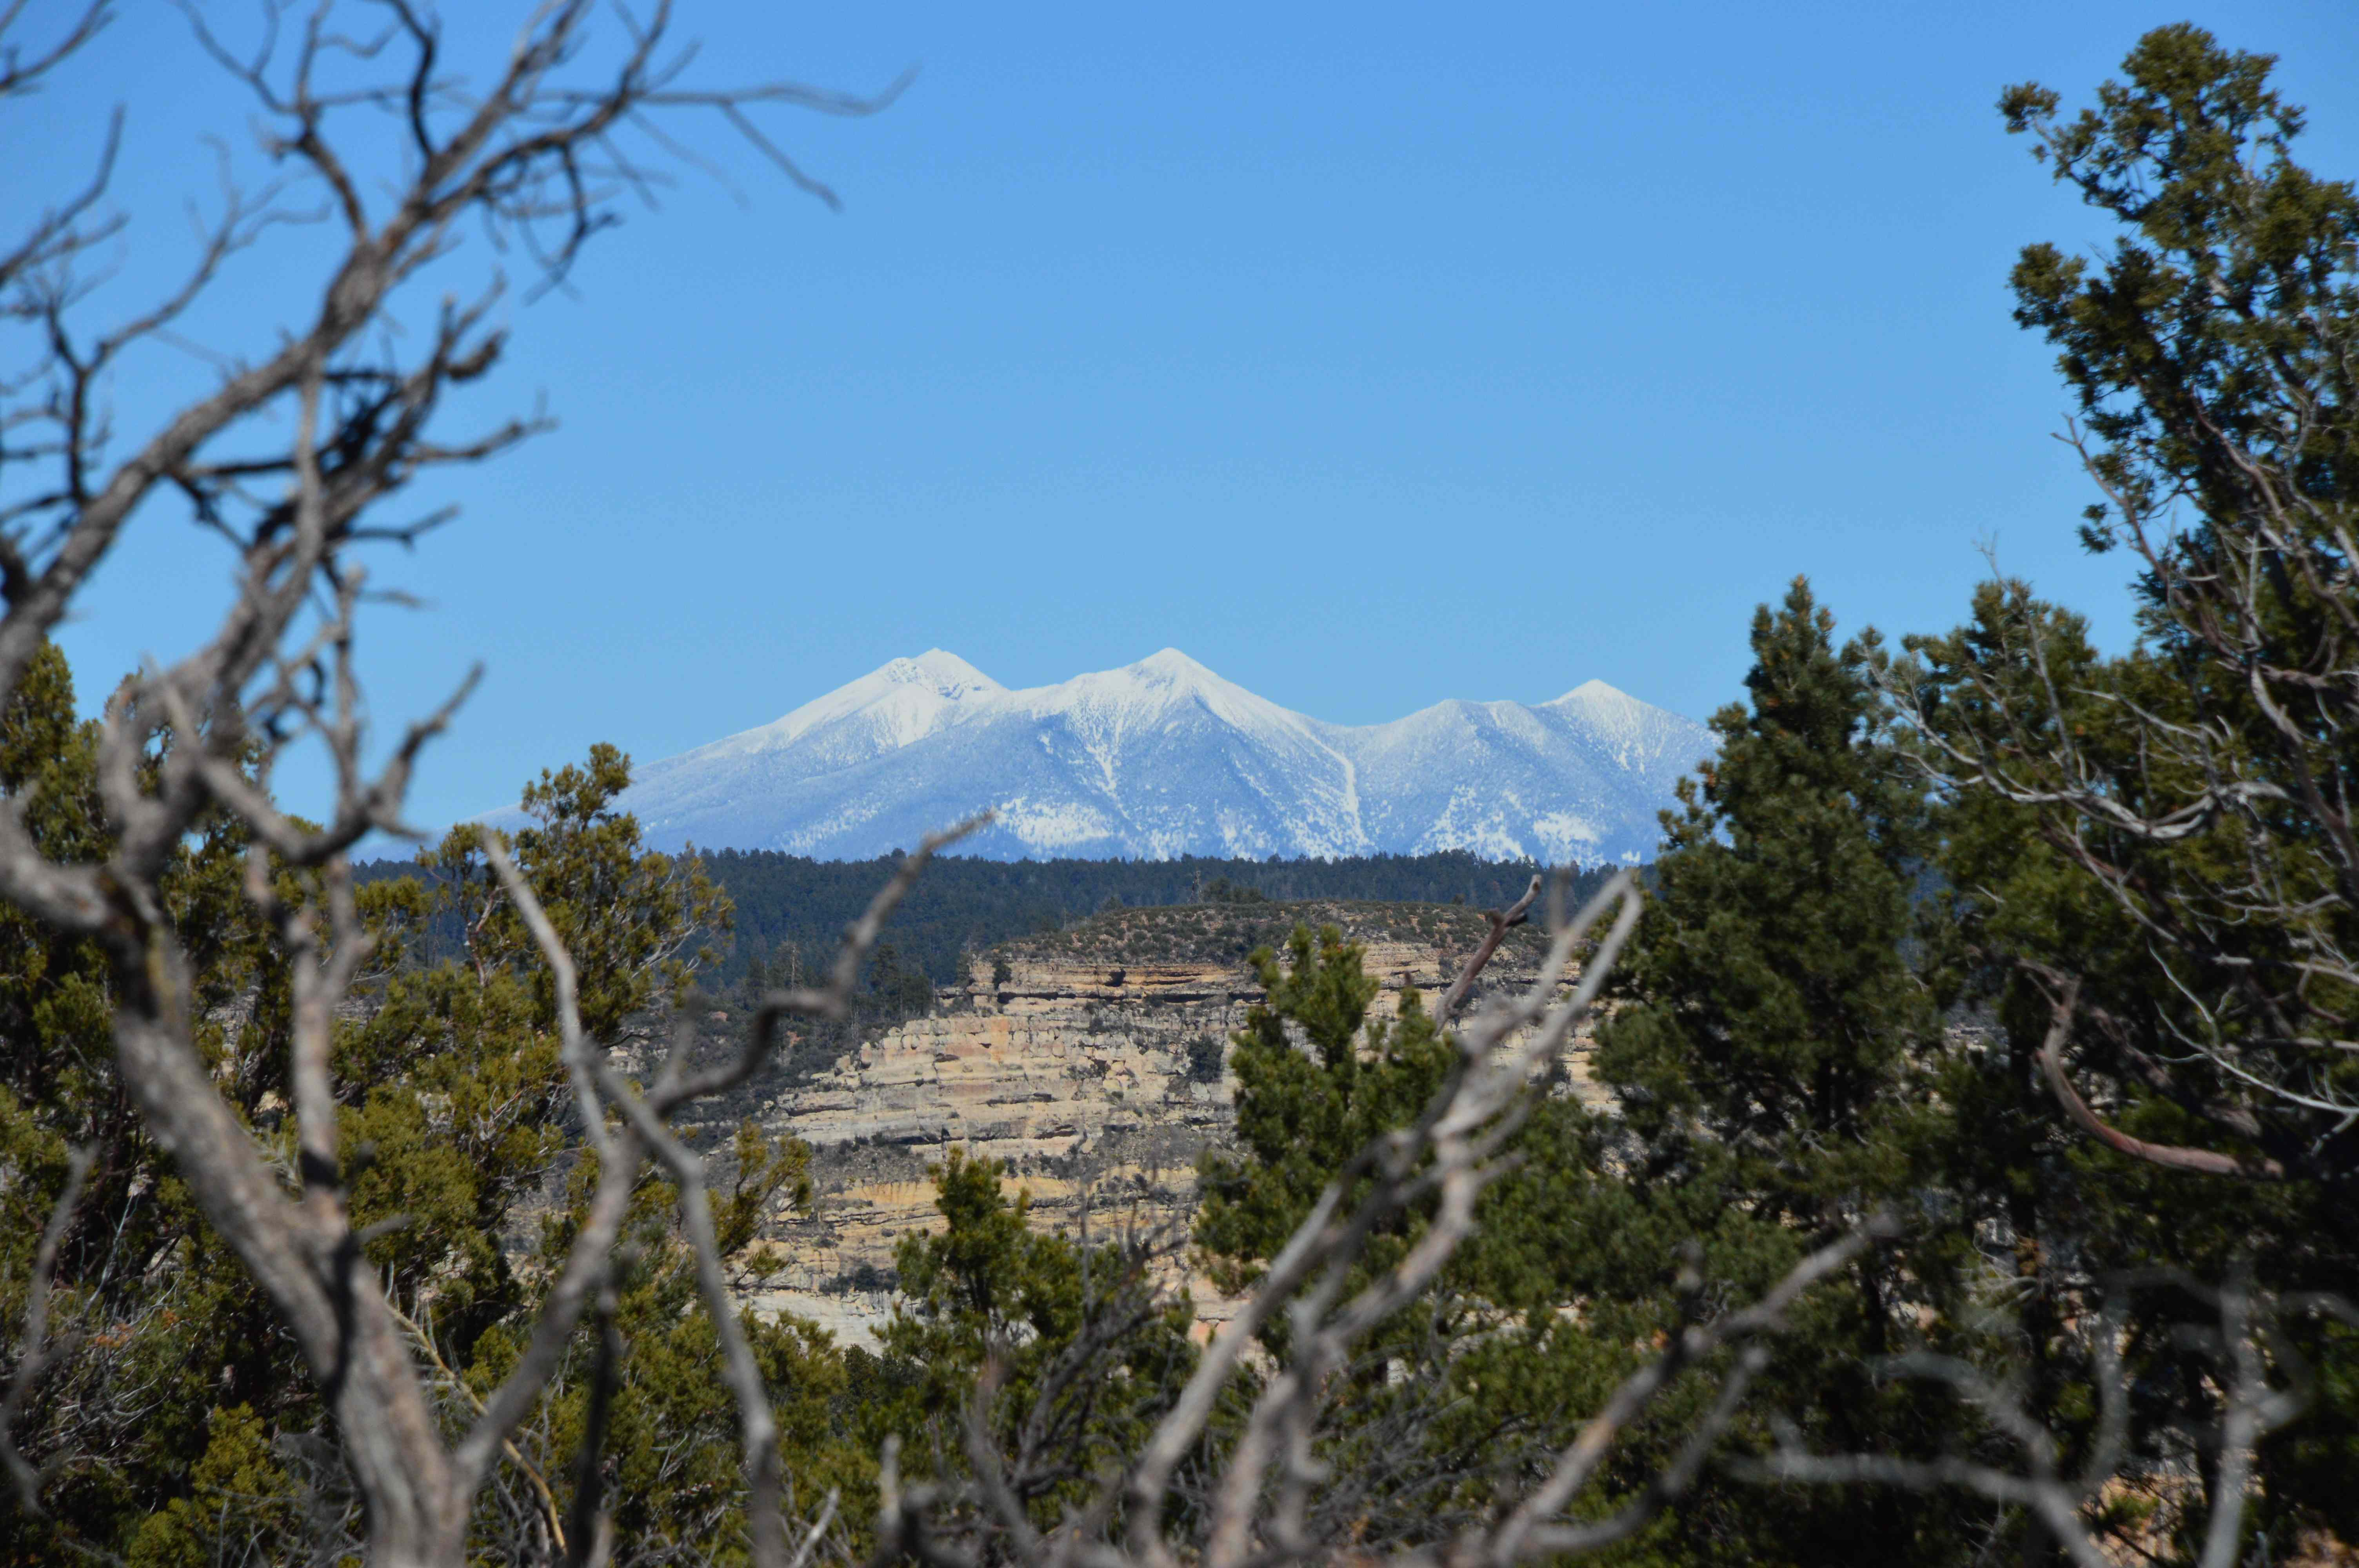 View from atop Bear Mountain of the Spanish Peaks.